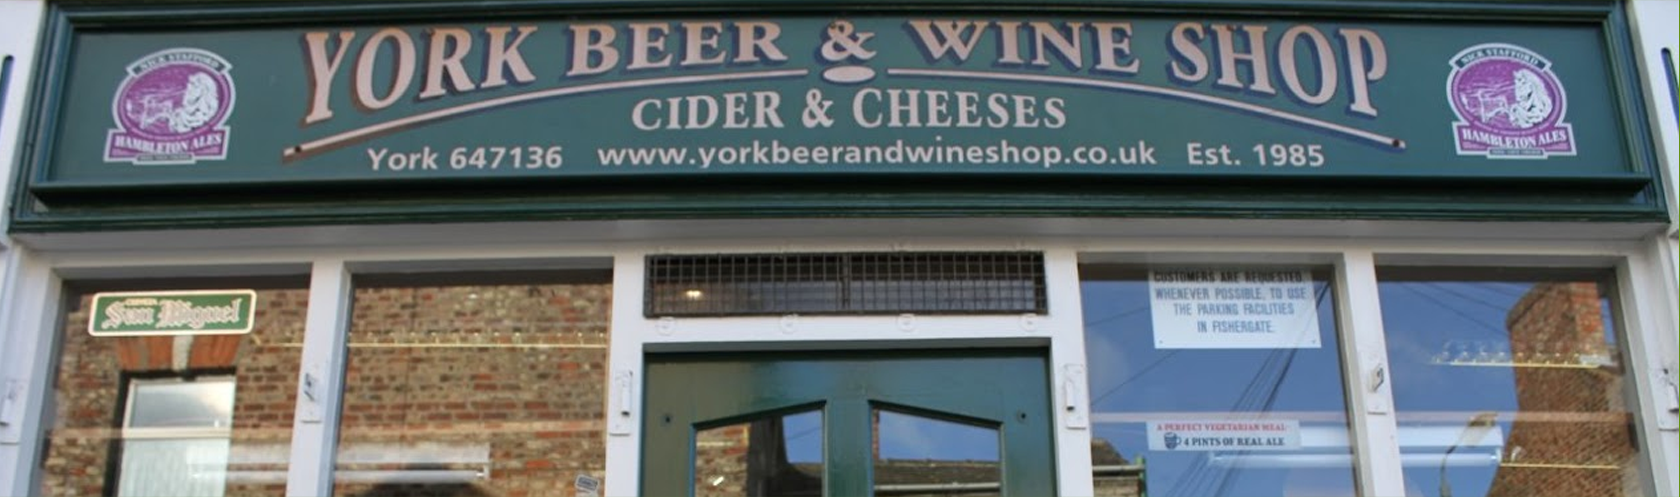 york-beer-and-wine-shop